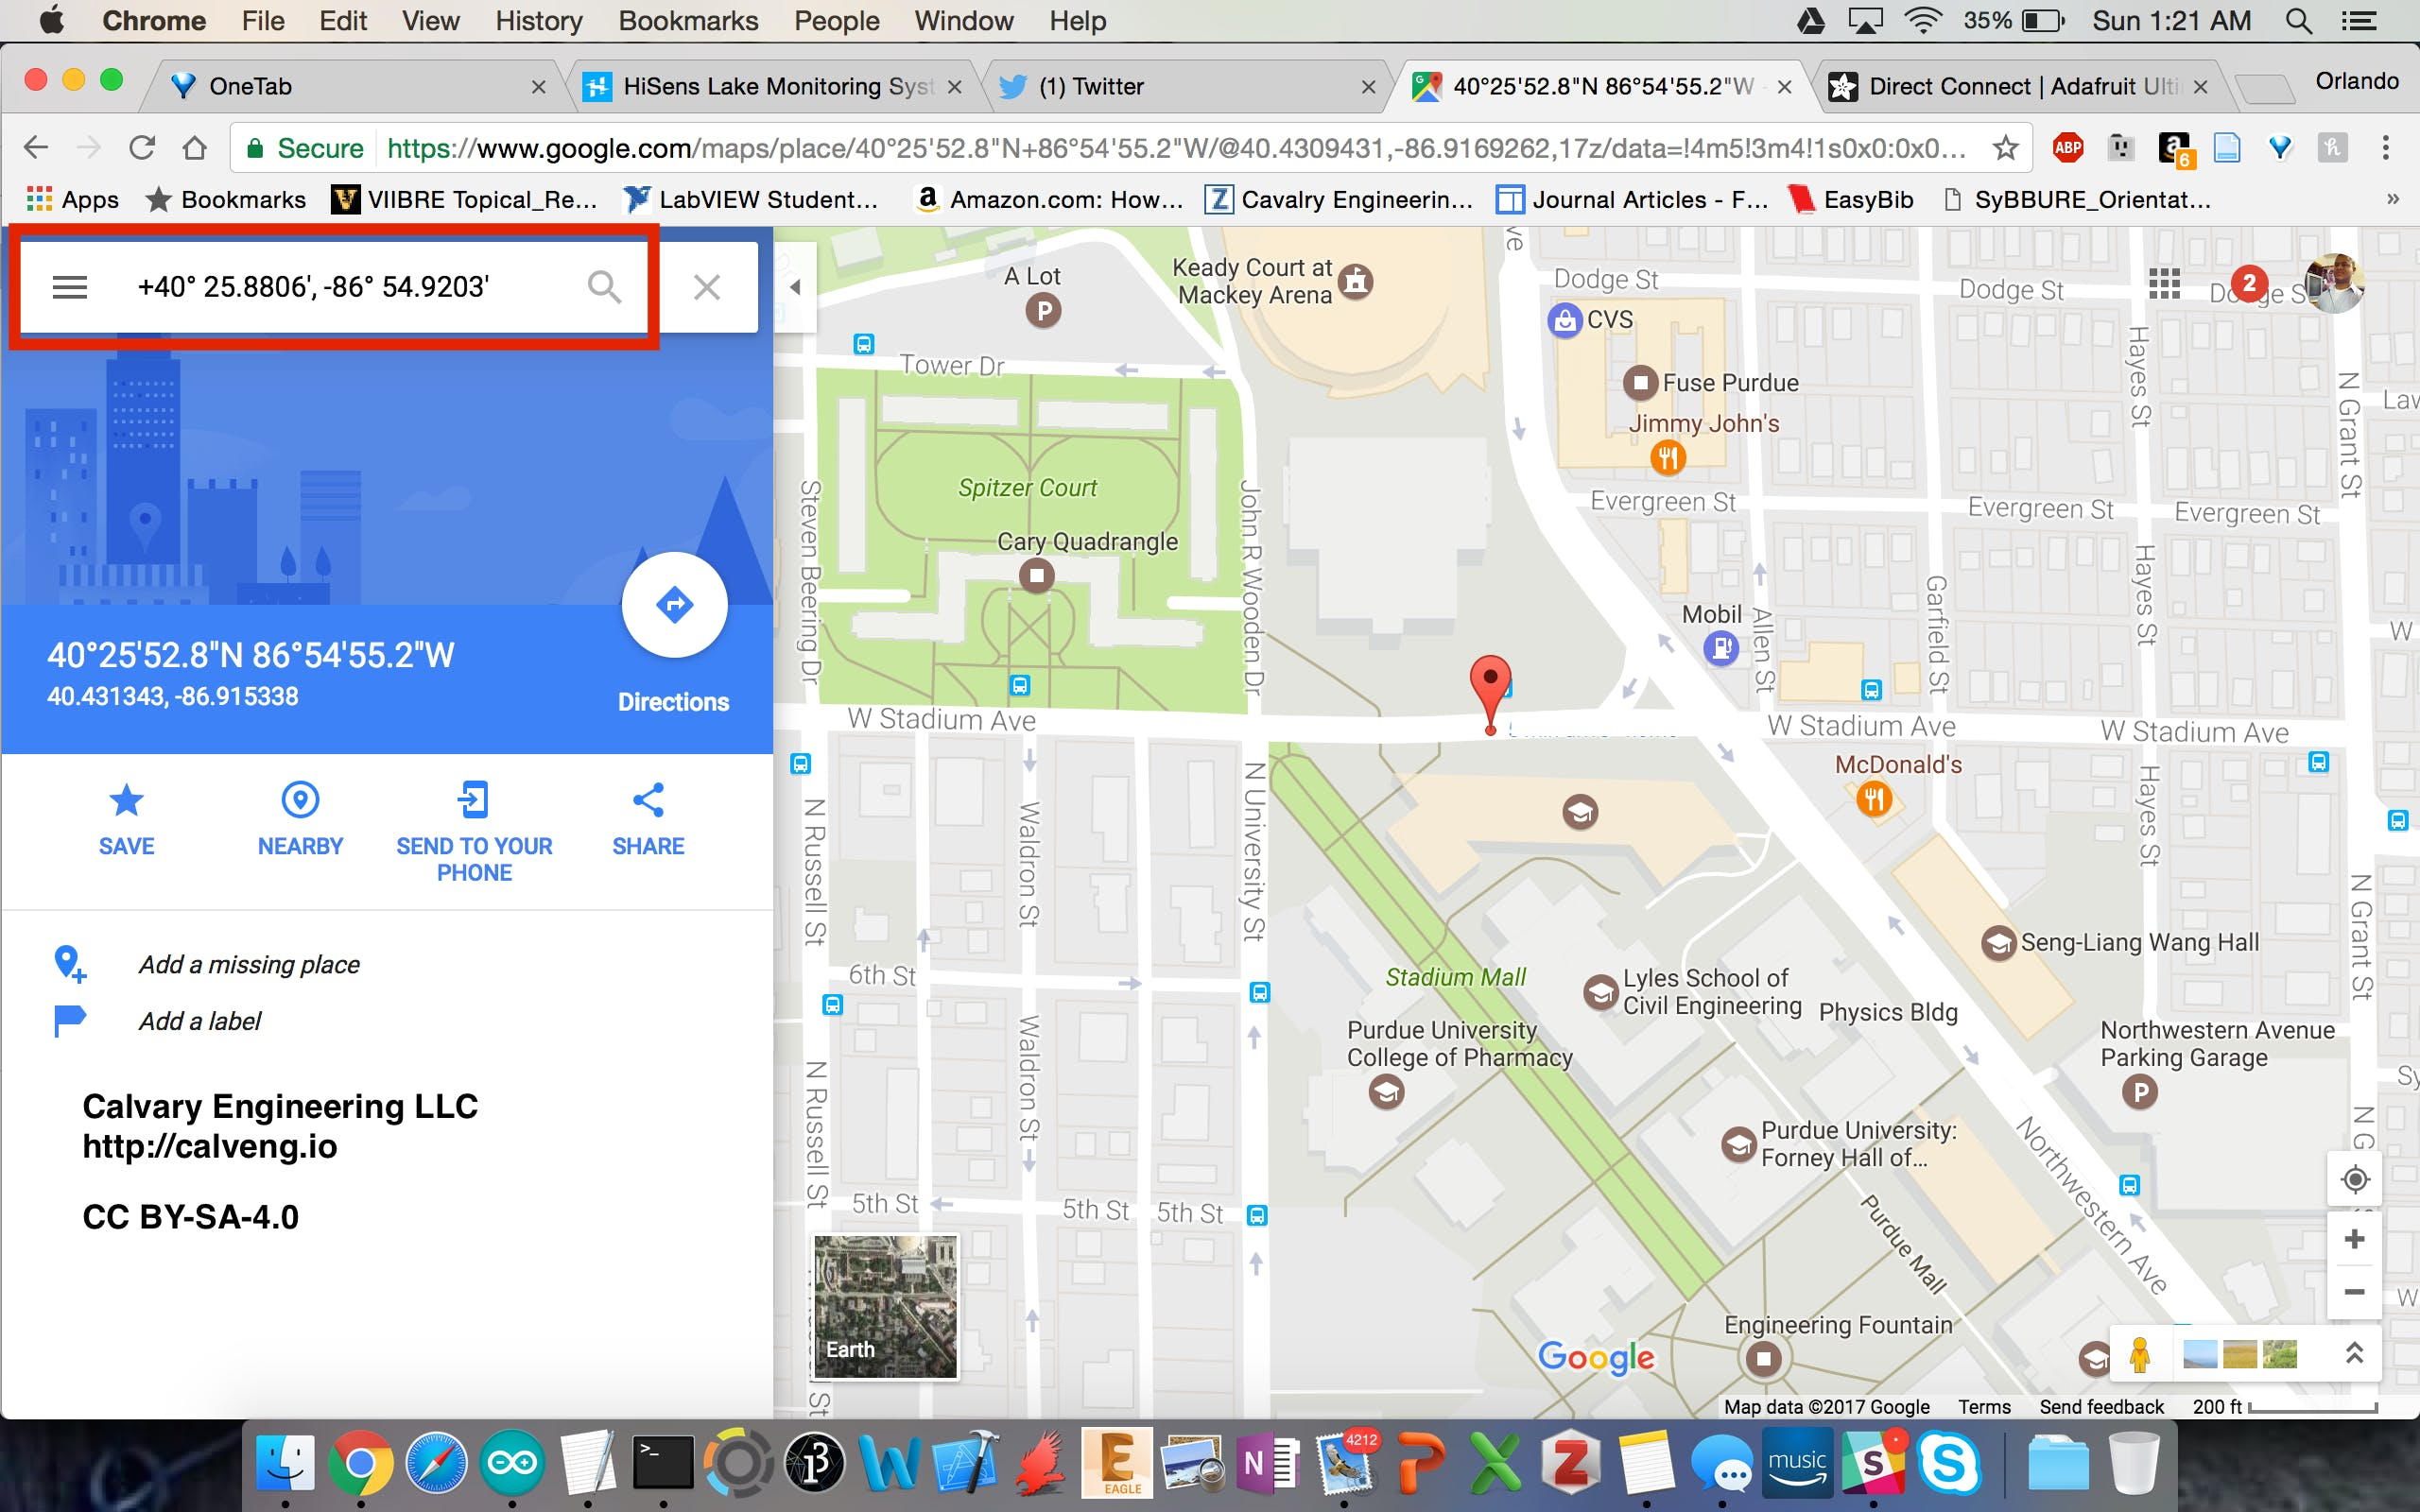 Google Maps data to verify GPS module data. Very accurate! I was sitting in my car outside Neil Armstrong Hall of Engineering and that's exactly where Google Maps pinned me.